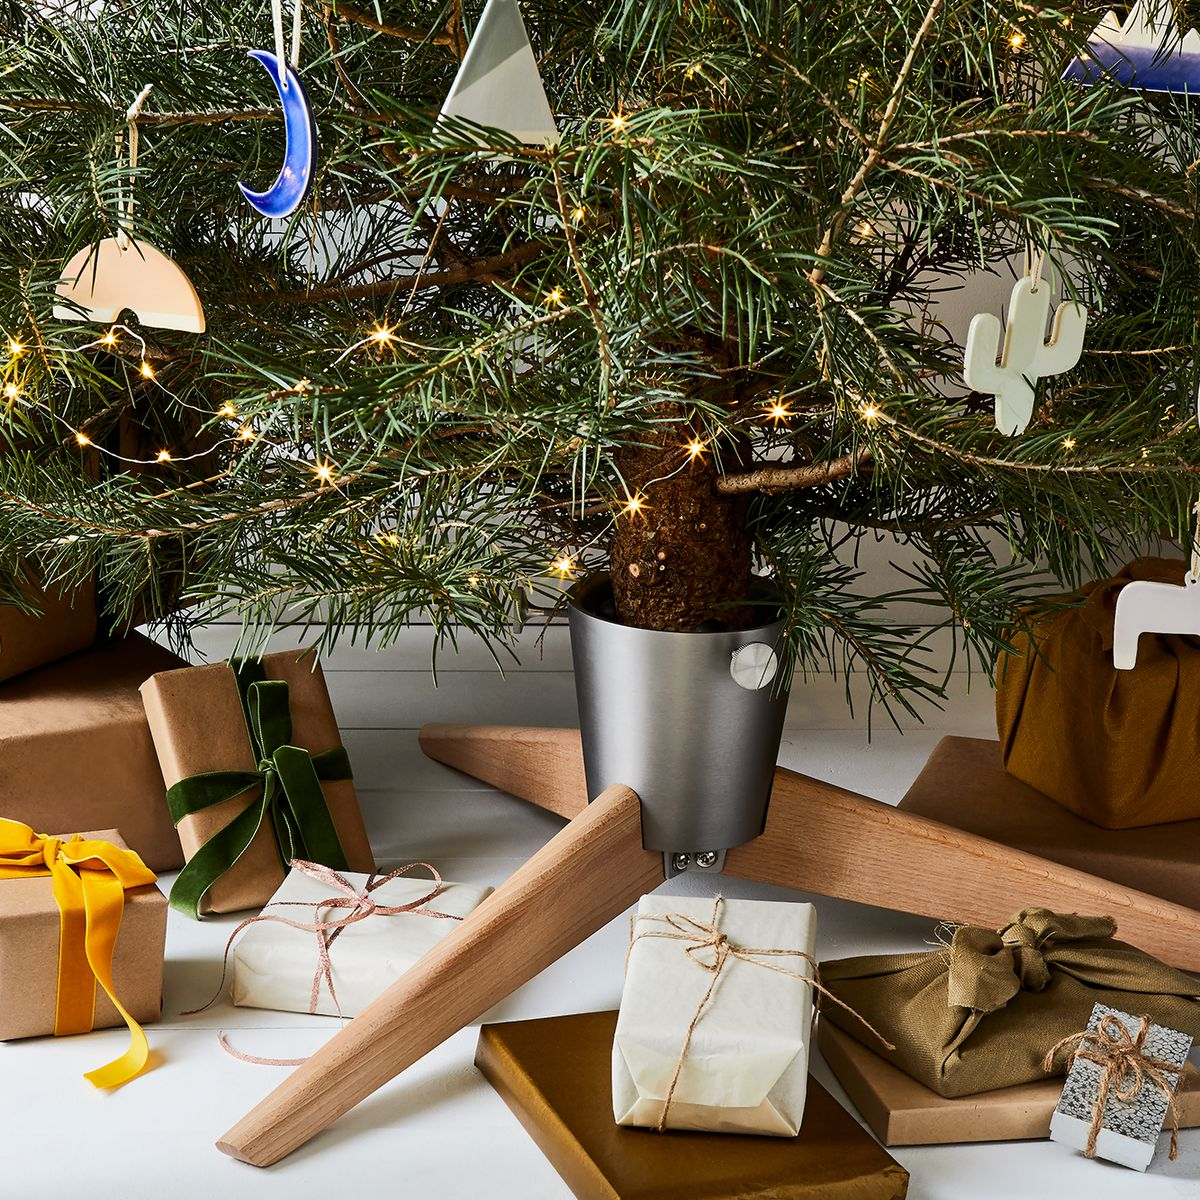 15 Easy Diy Christmas Ornament Ideas How To Make Holiday Ornaments